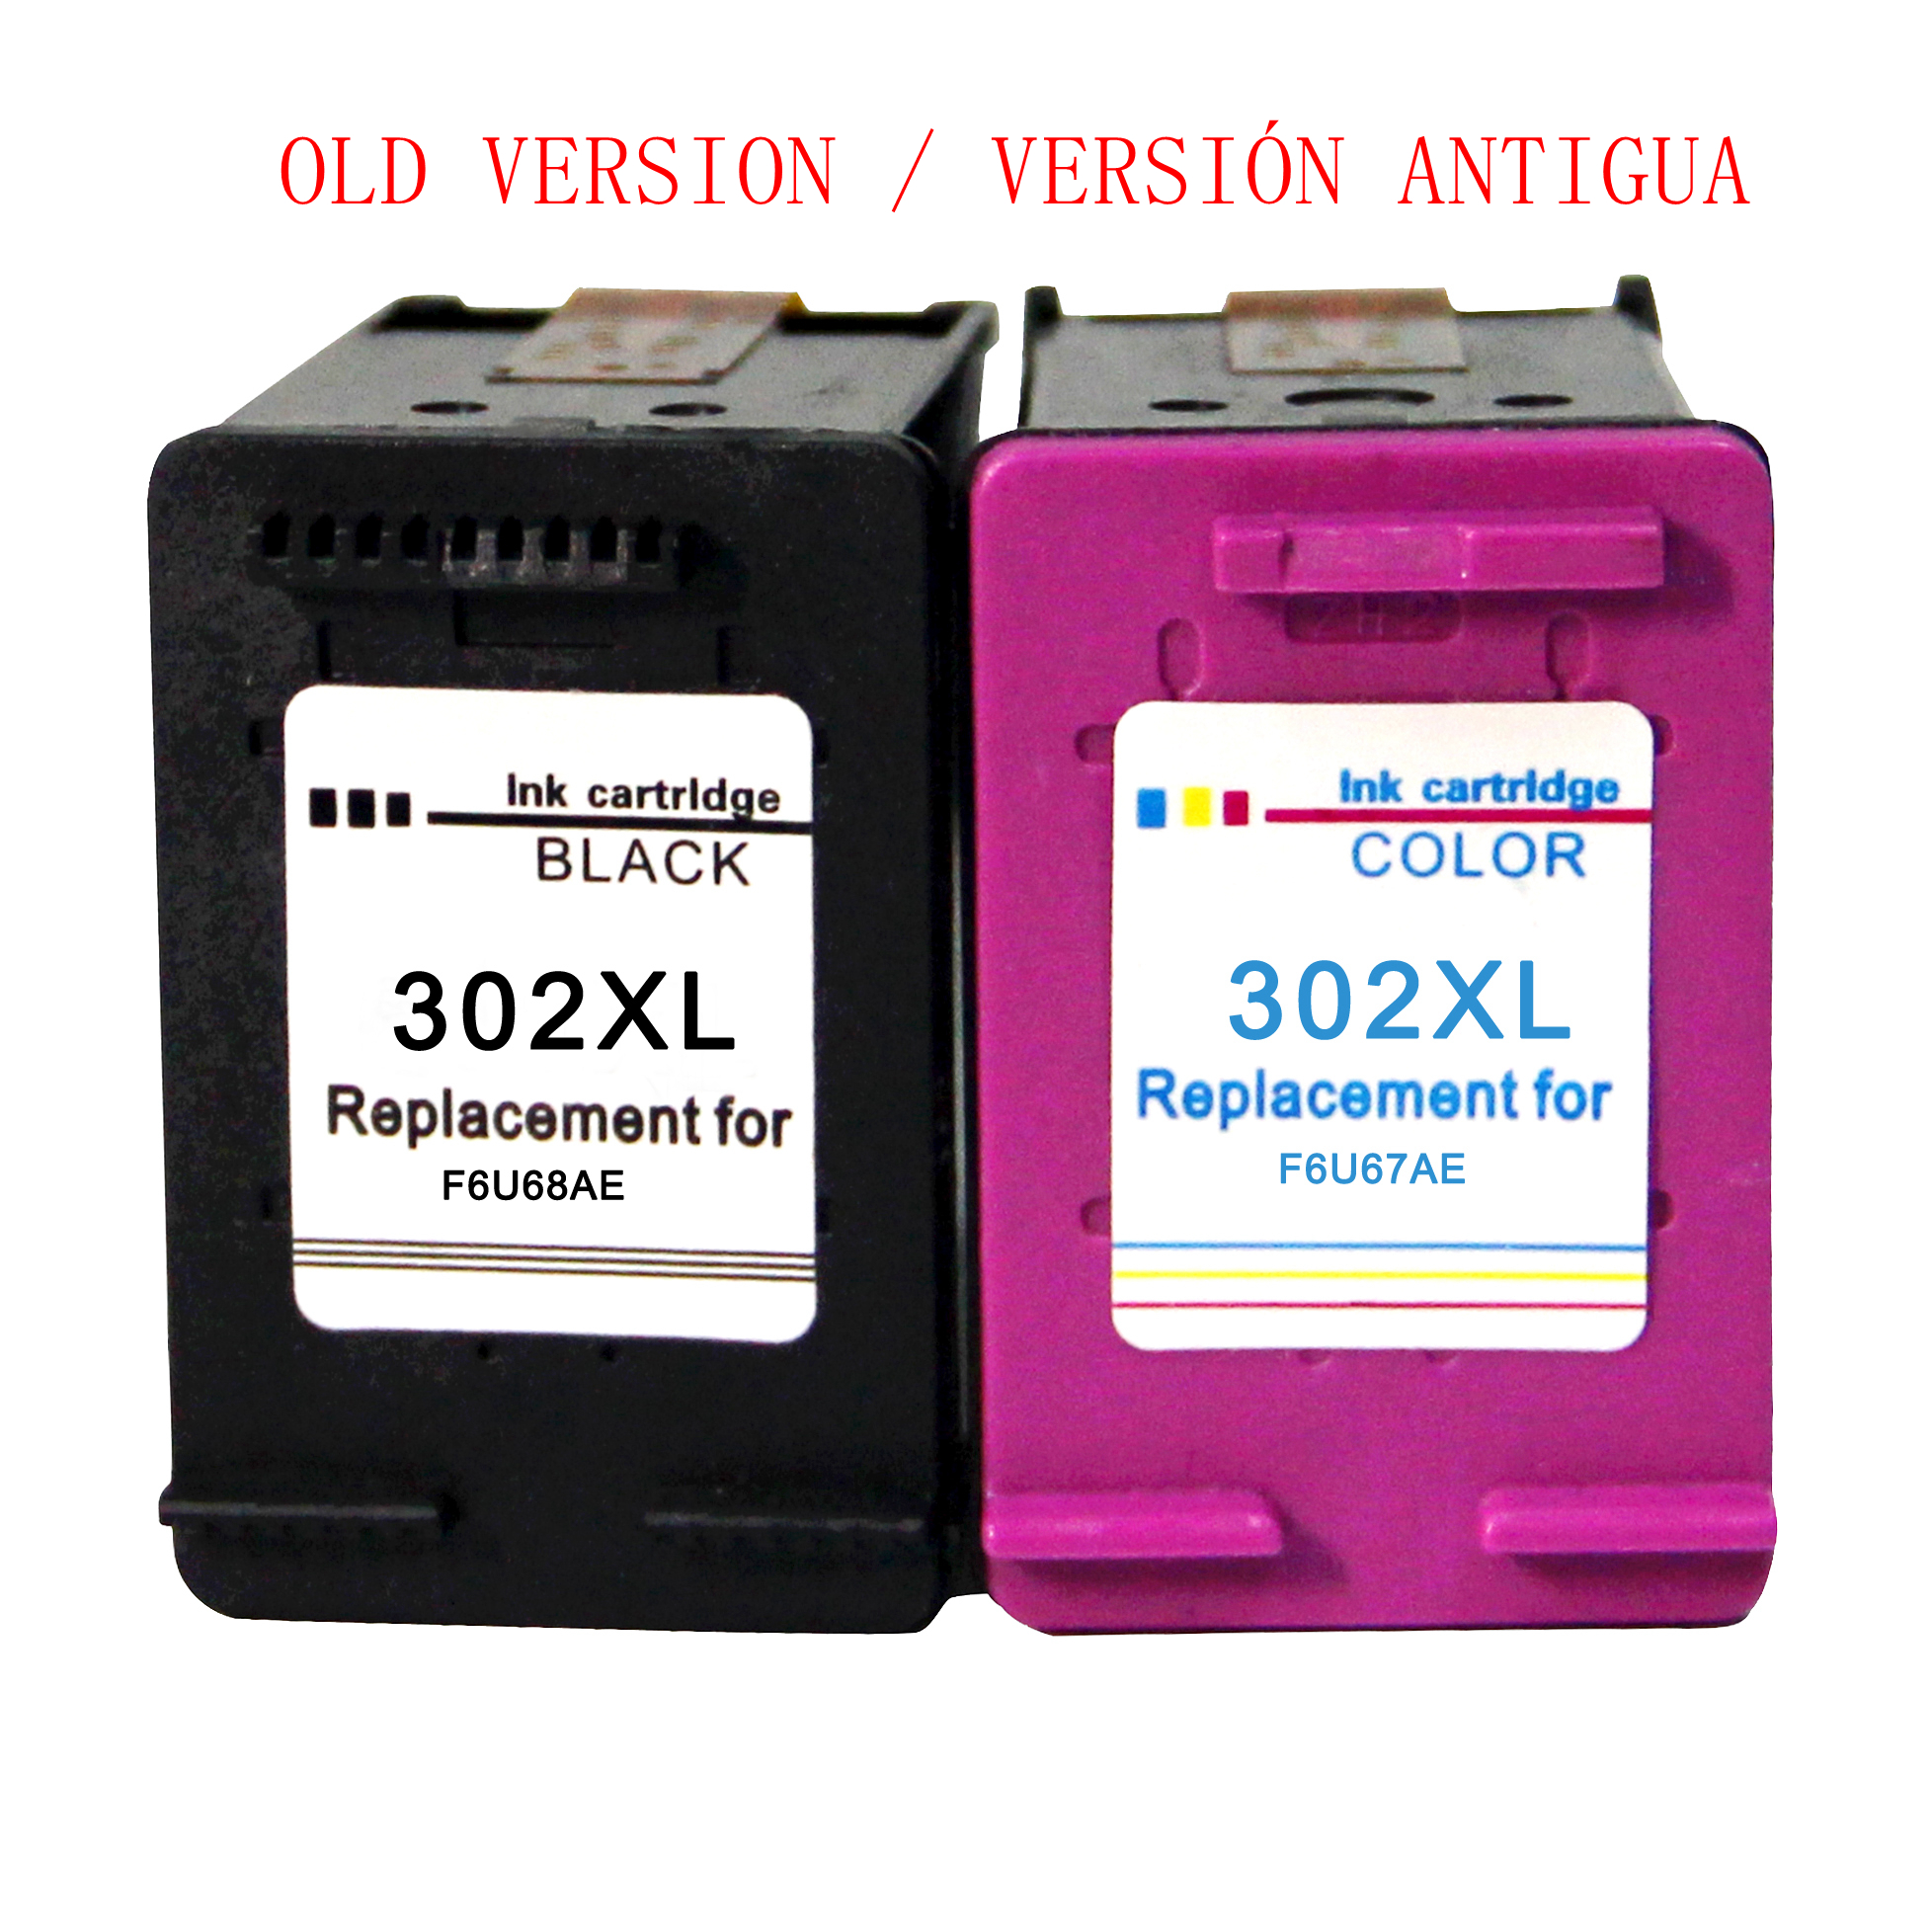 Ulang HP 302 XL Ink Cartridge untuk HP Officejet 3831 3833 DeskJet 1110 2130 3630 3639 3633 3636 Iri 4520 4524